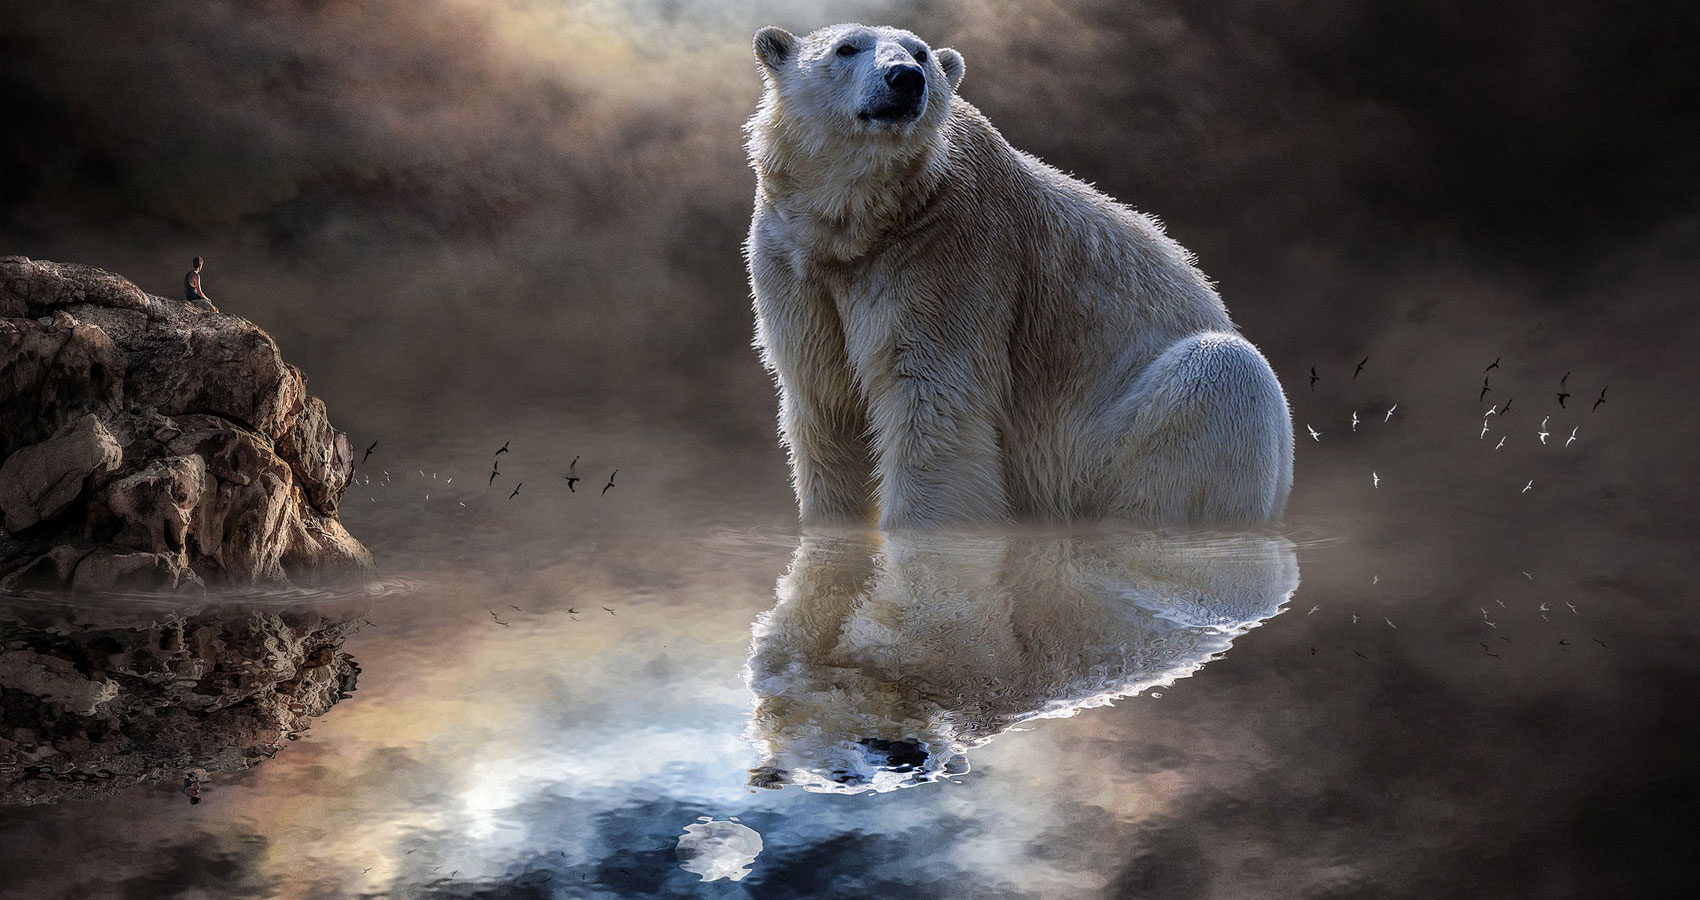 Bear In There, a poem by Shel Silverstein at Spillwords.com